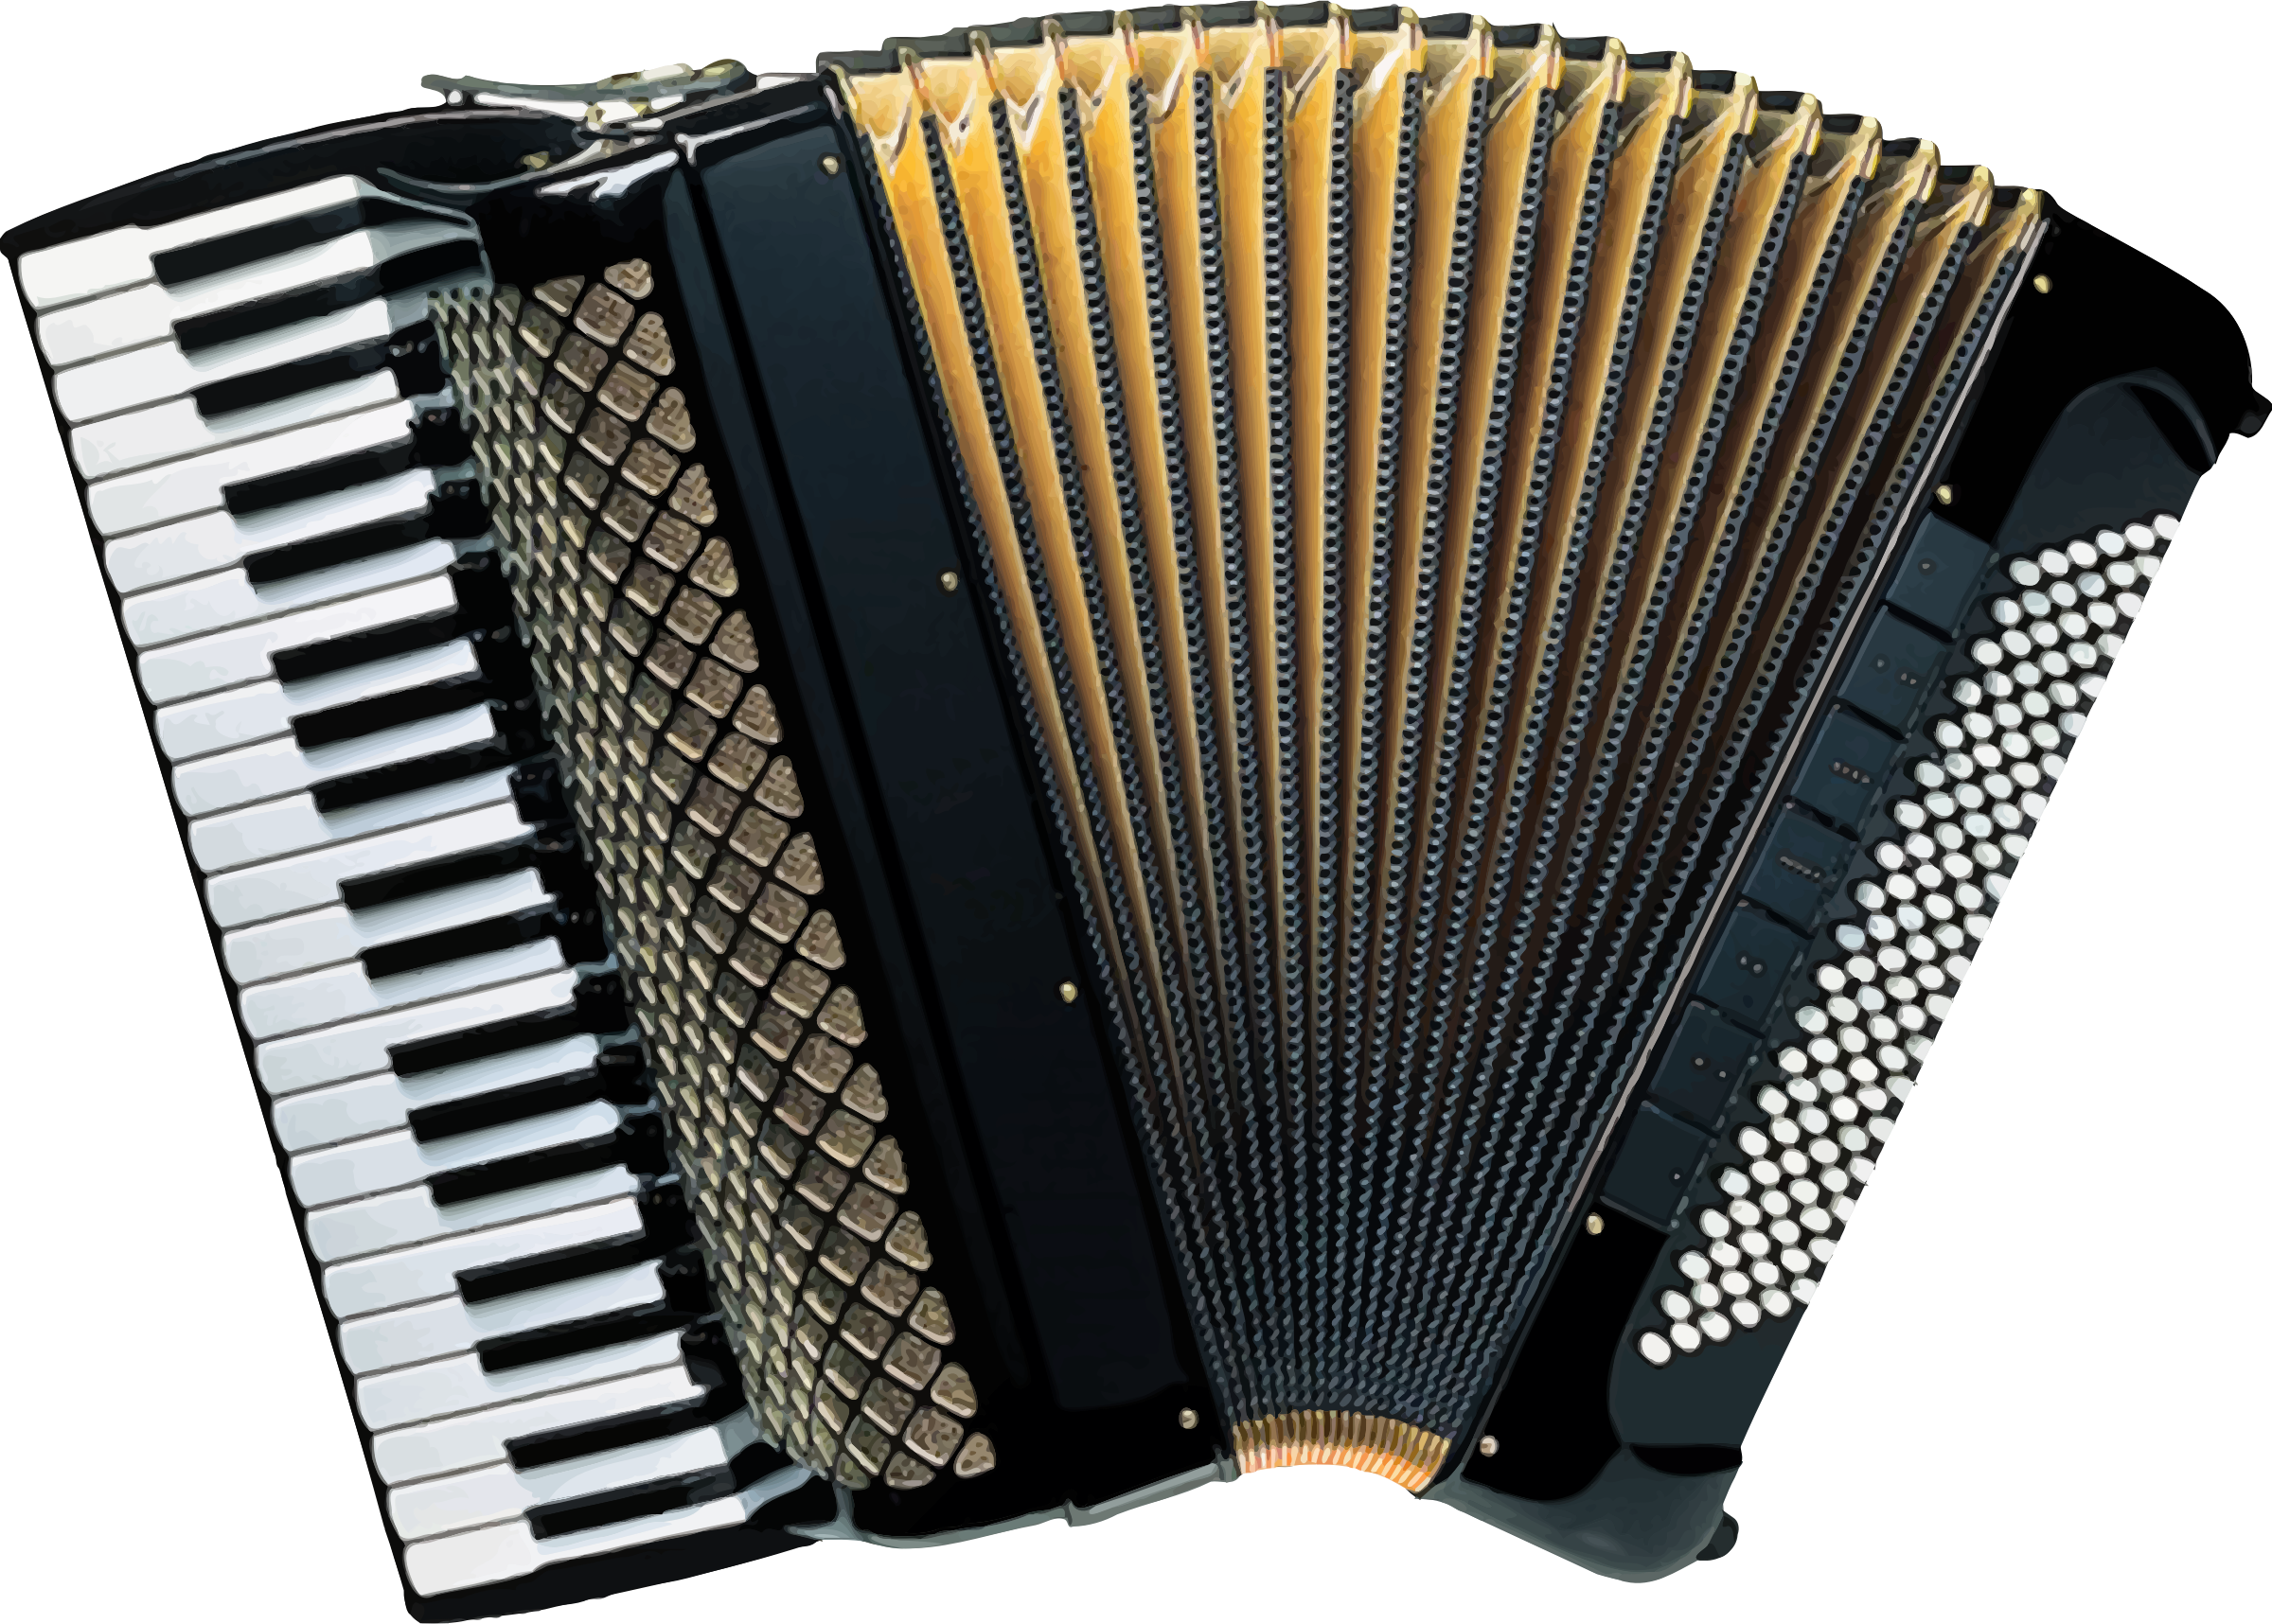 Piano accordion (vectorized) by Firkin